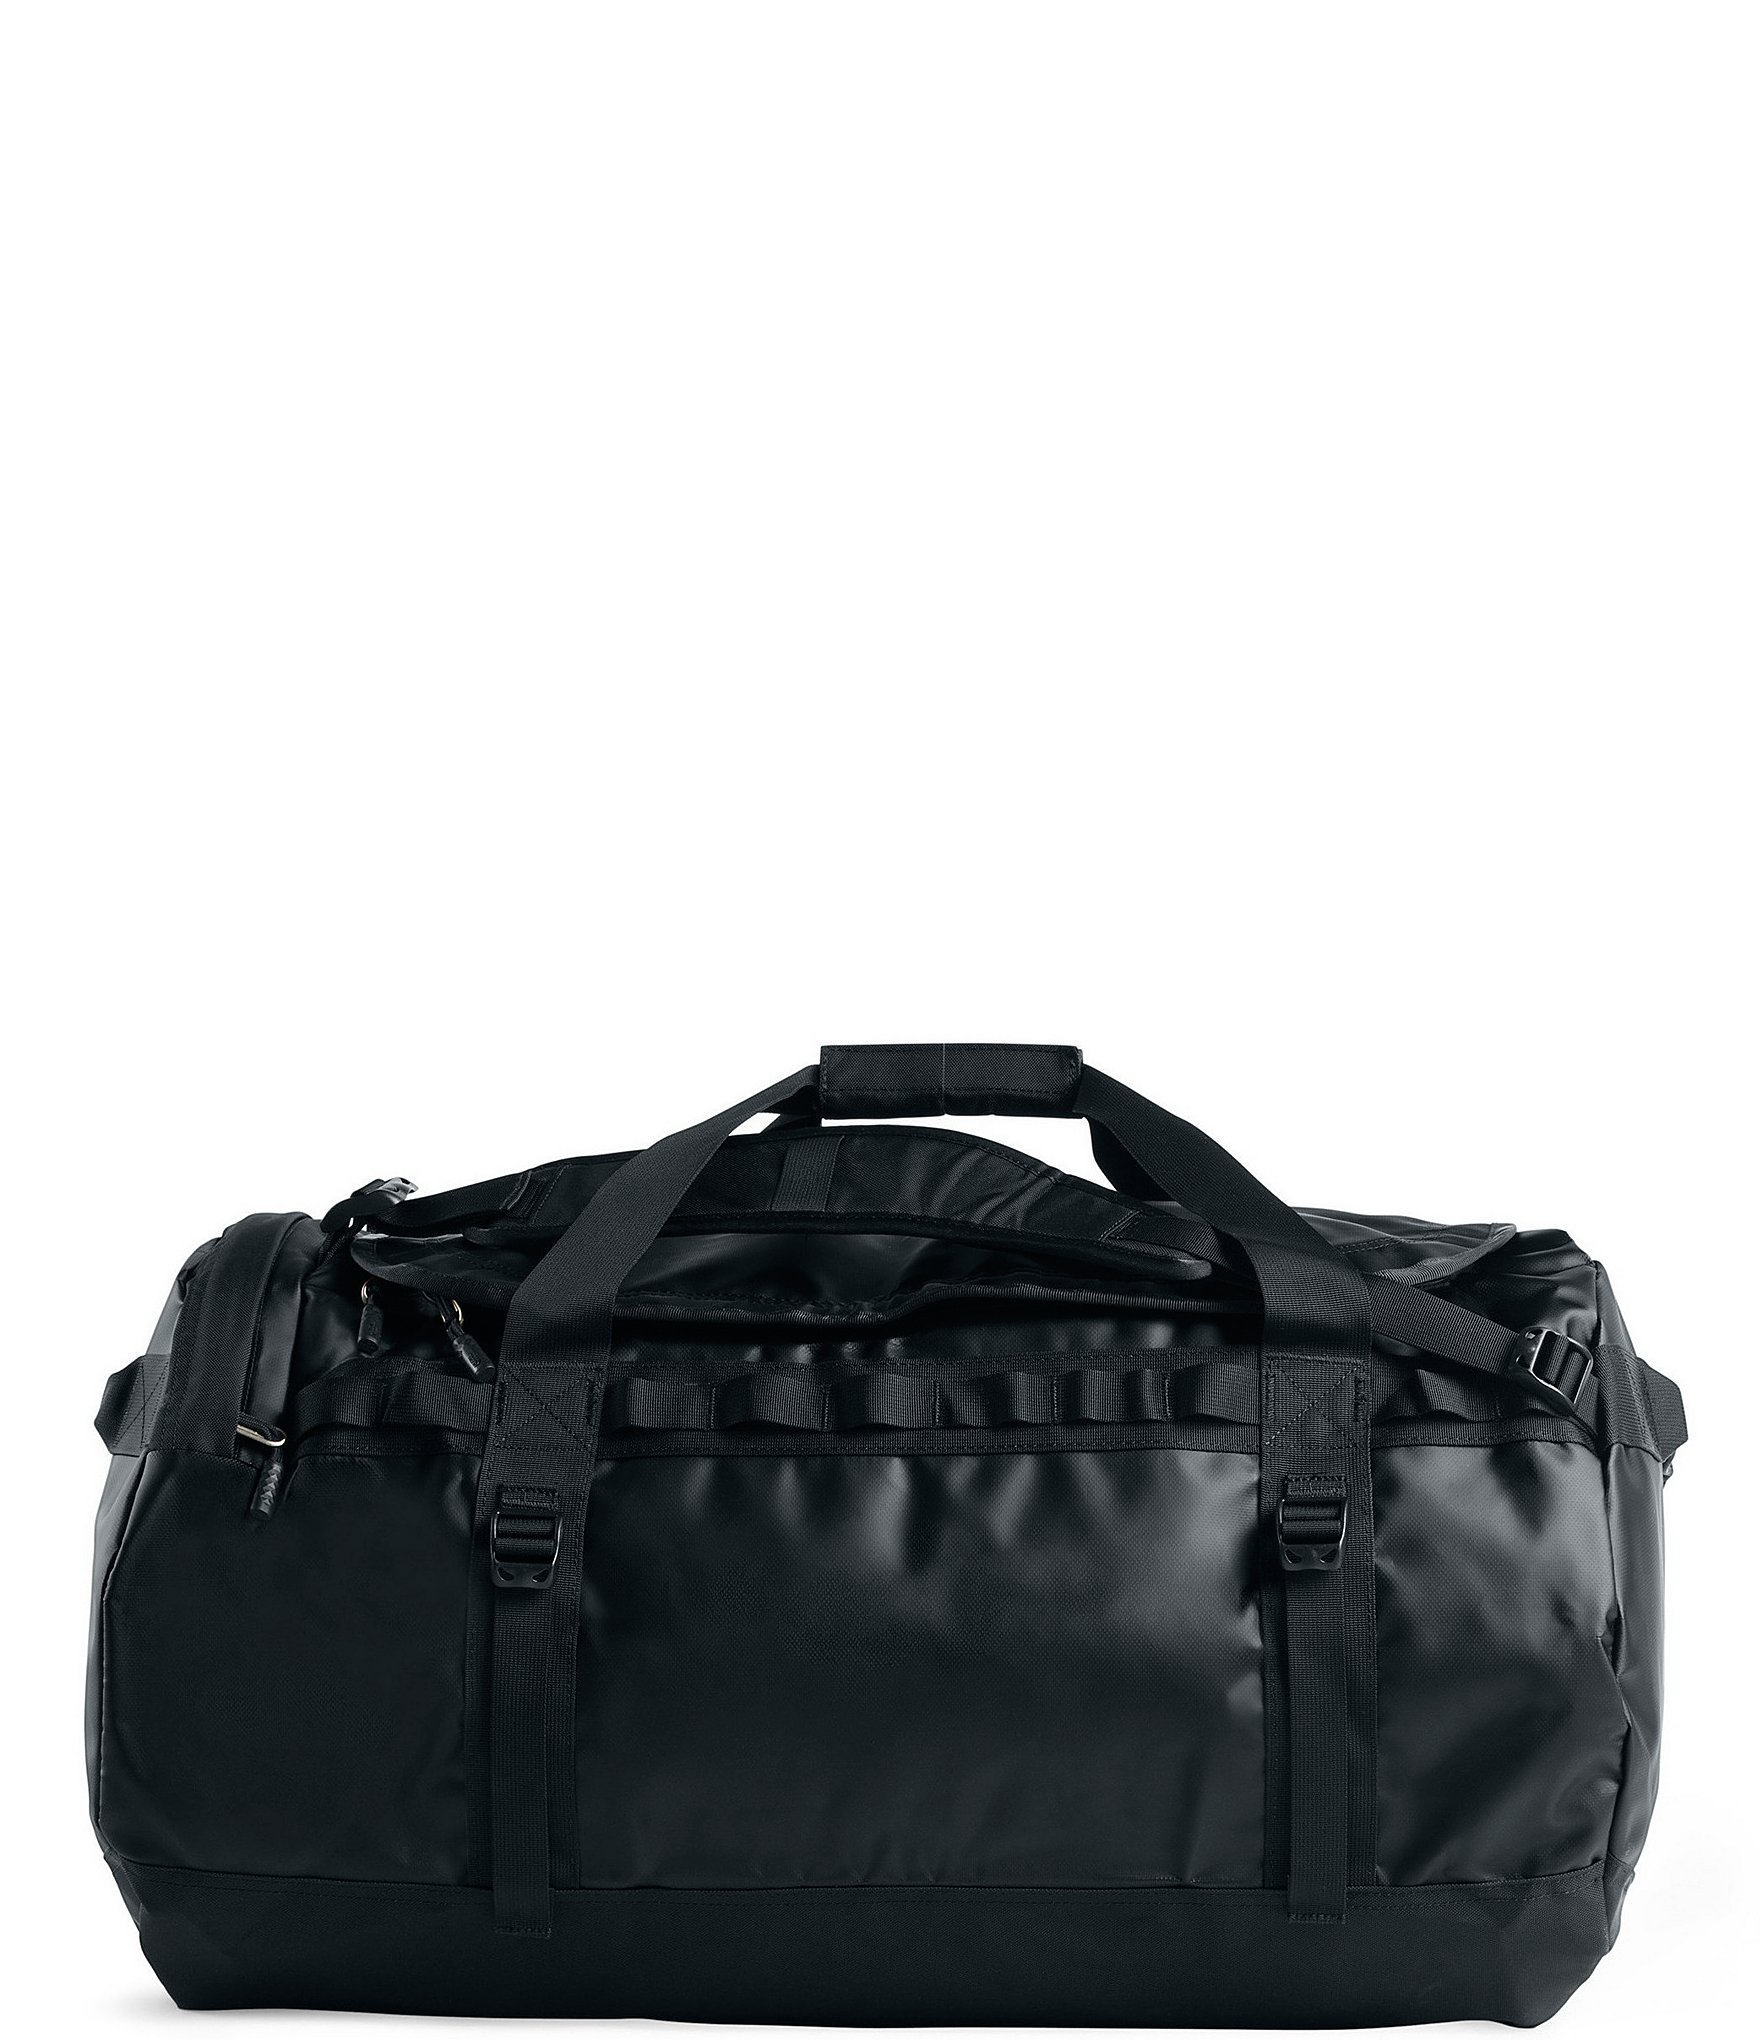 b957677dd7 The North Face Duffel Bags   Rolling Duffle Bags